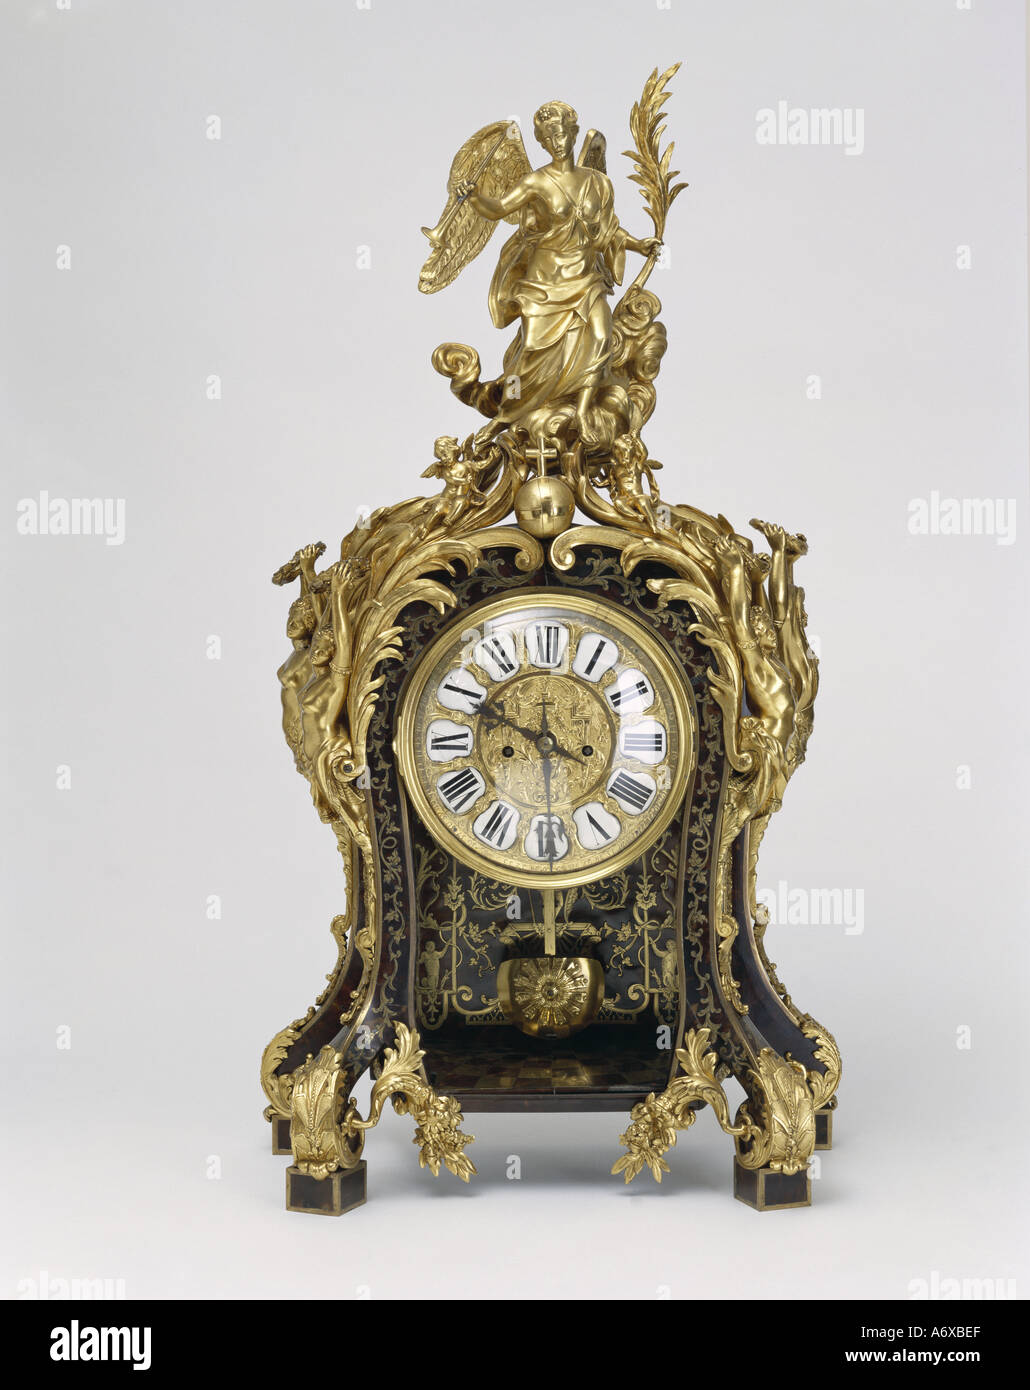 Clock. France, 17th-18th century. - Stock Image